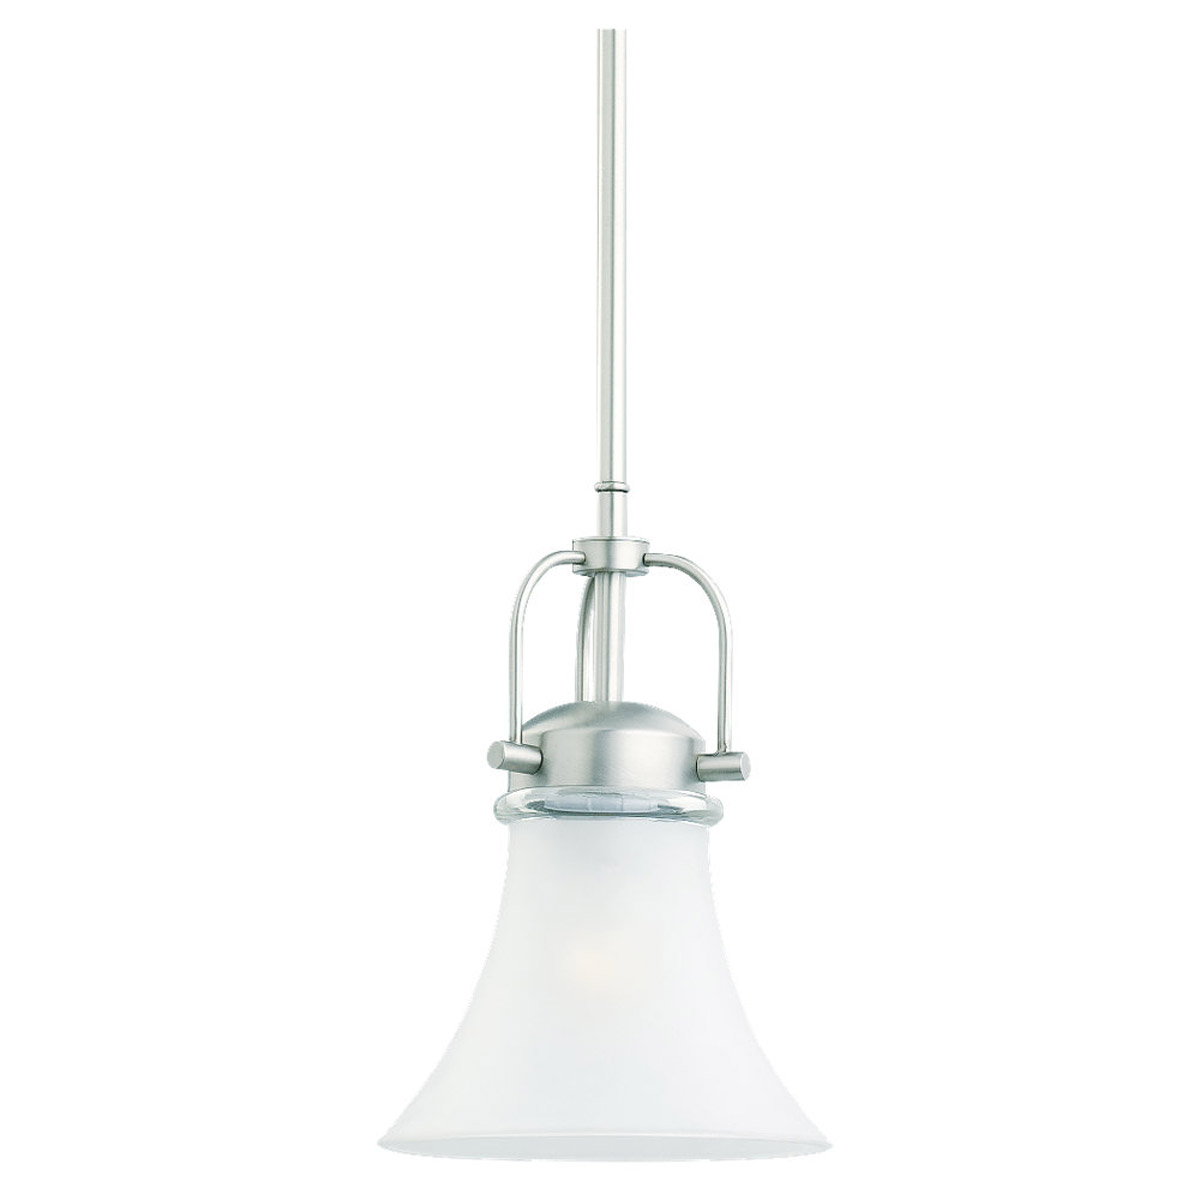 Sea Gull Lighting Newport 1 Light Mini Pendant in Antique Brushed Nickel 61283BLE-965 photo